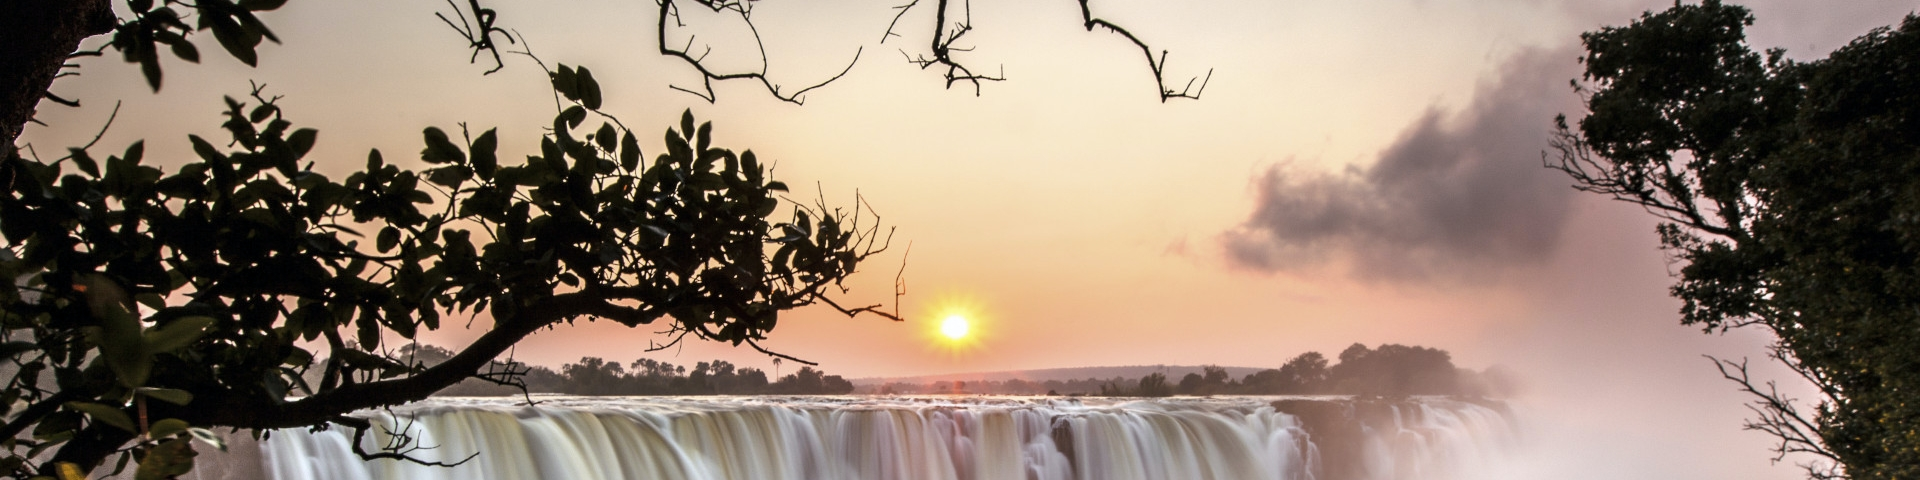 Banner Africa Travel Guide Victoria Falls - Zimbabwe